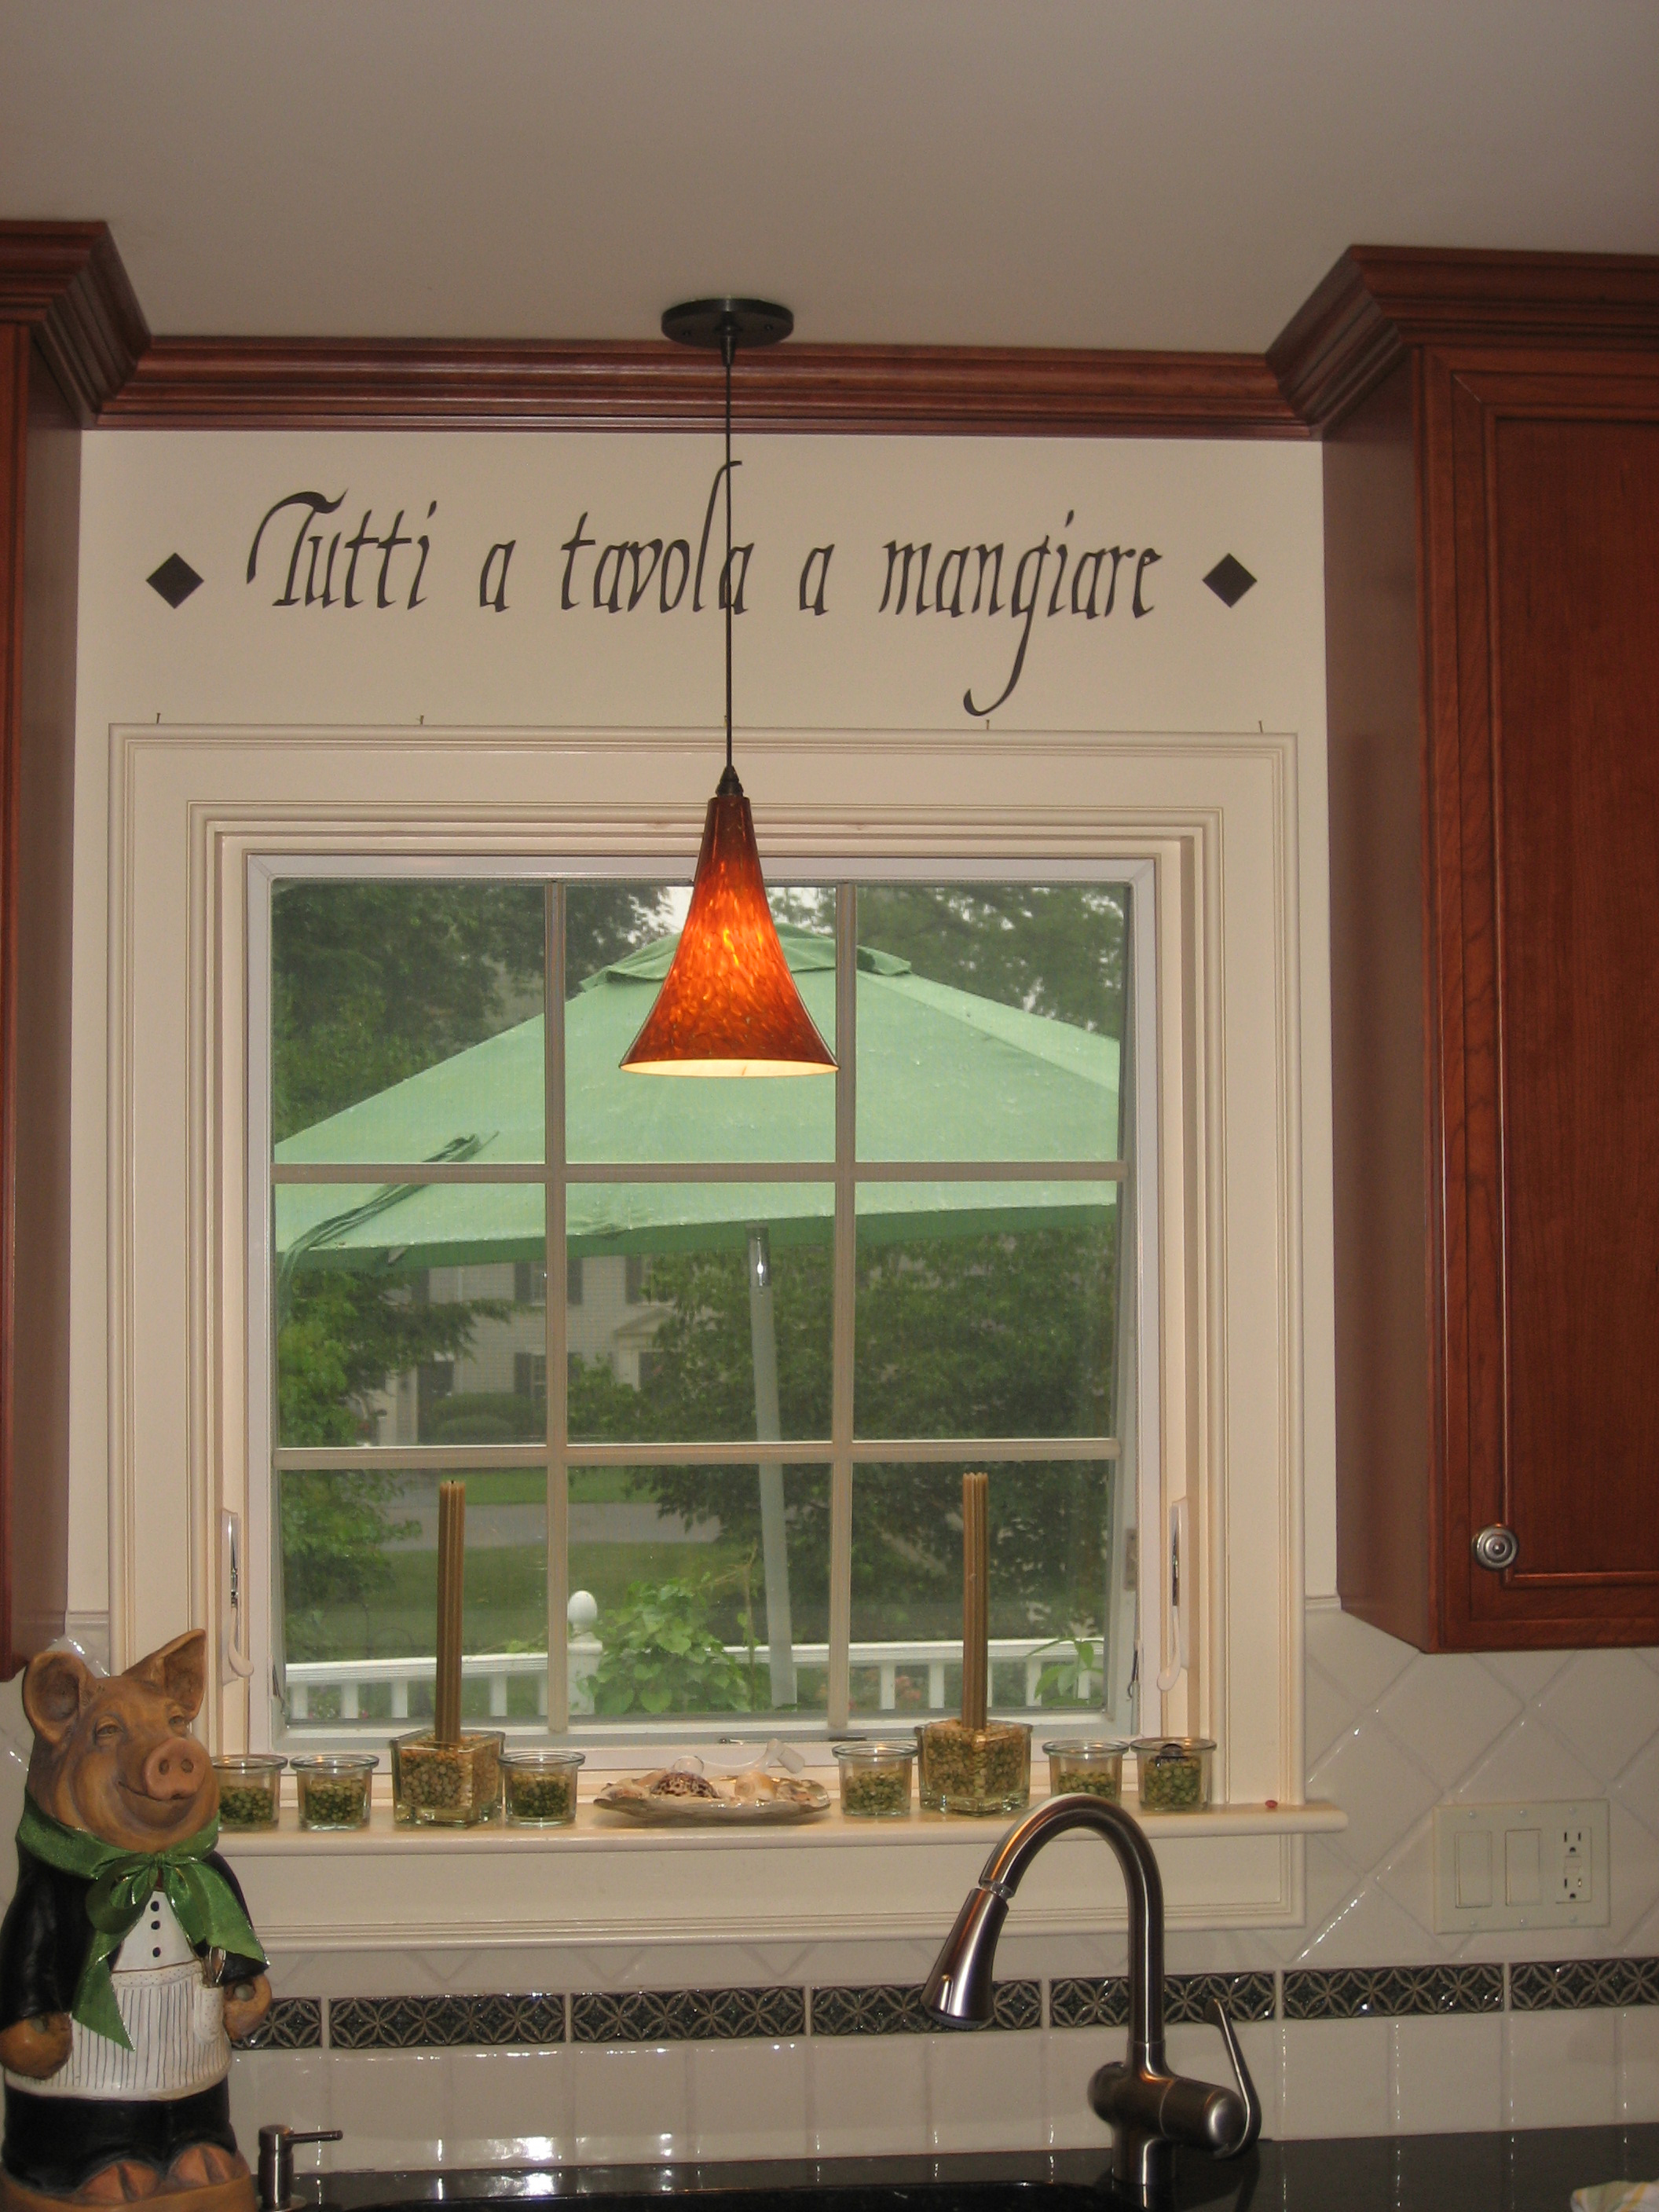 Italian Kitchen Quotes Italian Kitchen Sayings And Wall